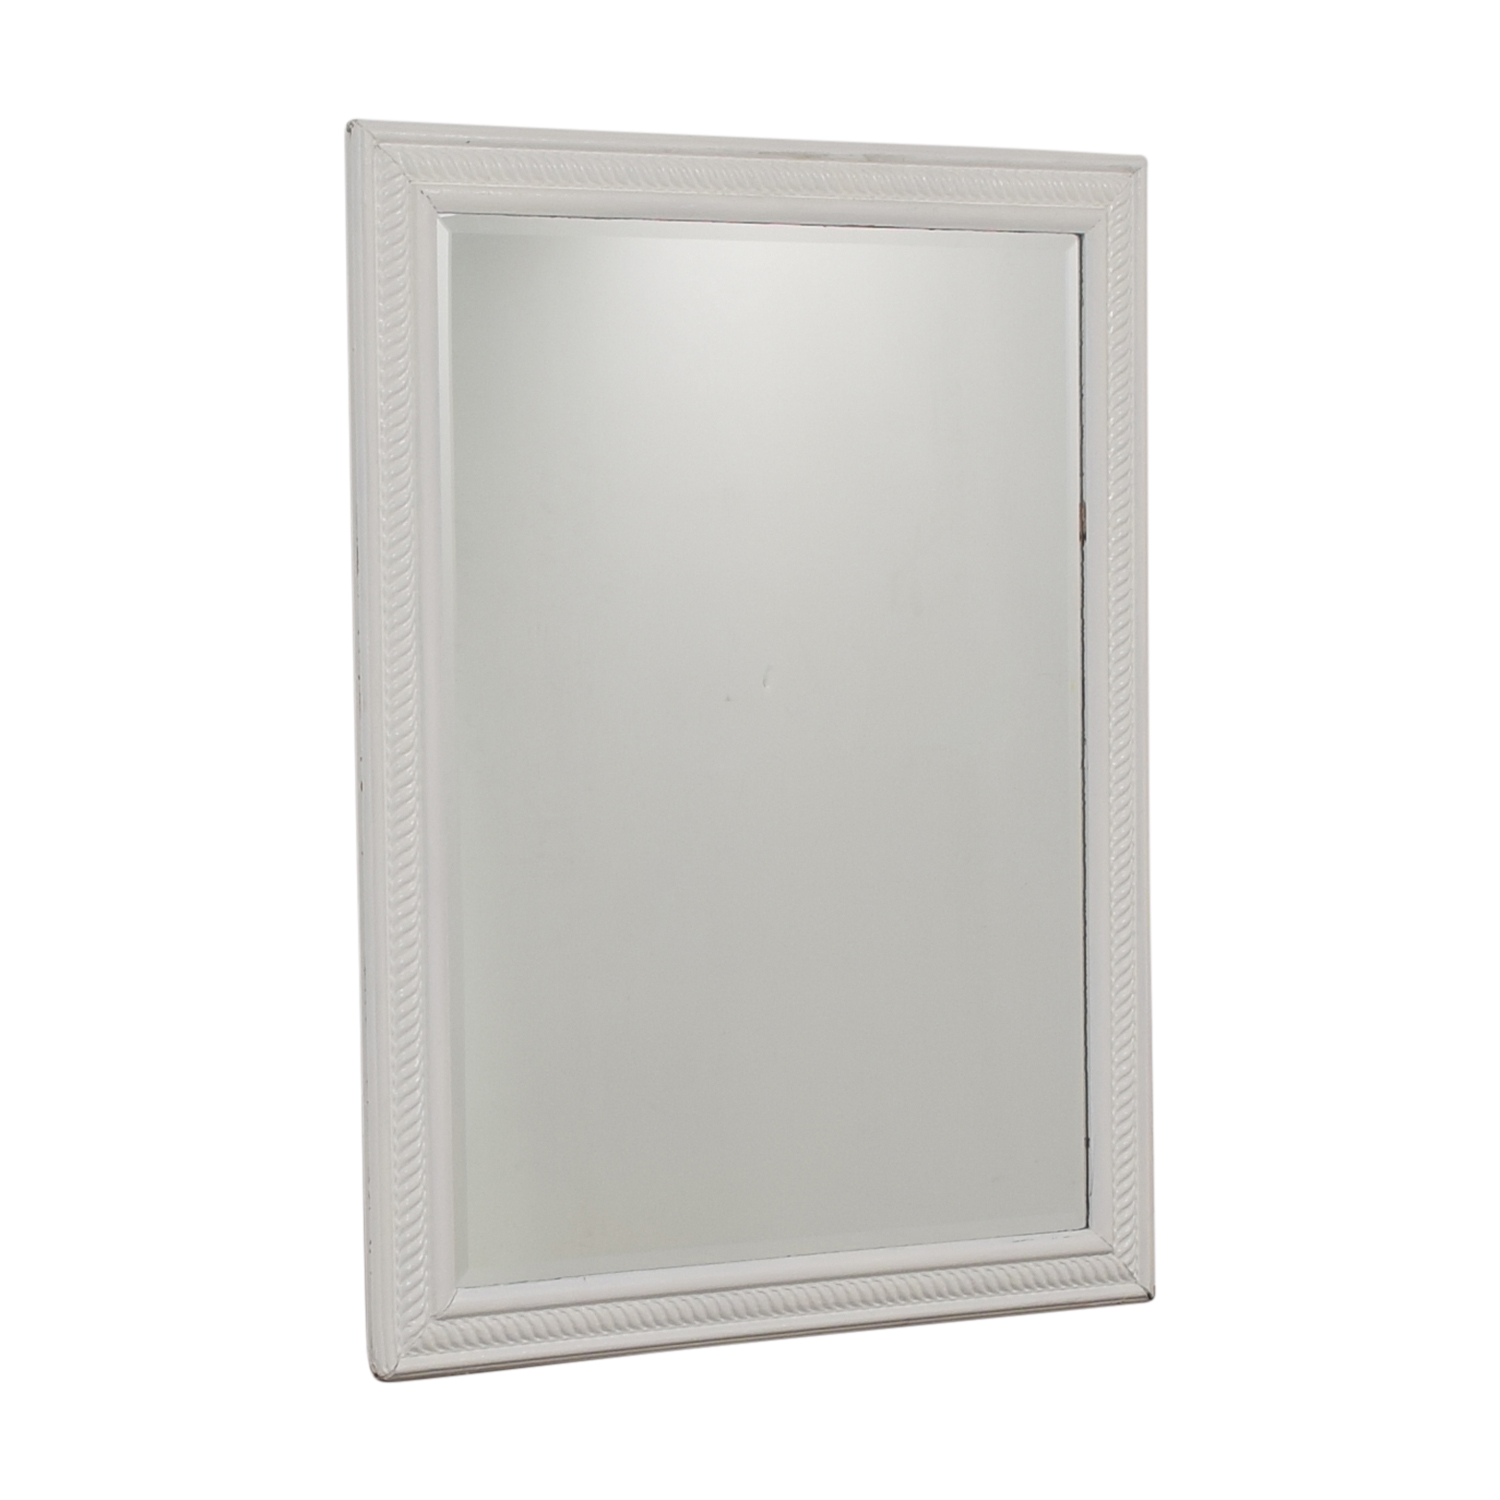 White Frames Wall Mirror second hand